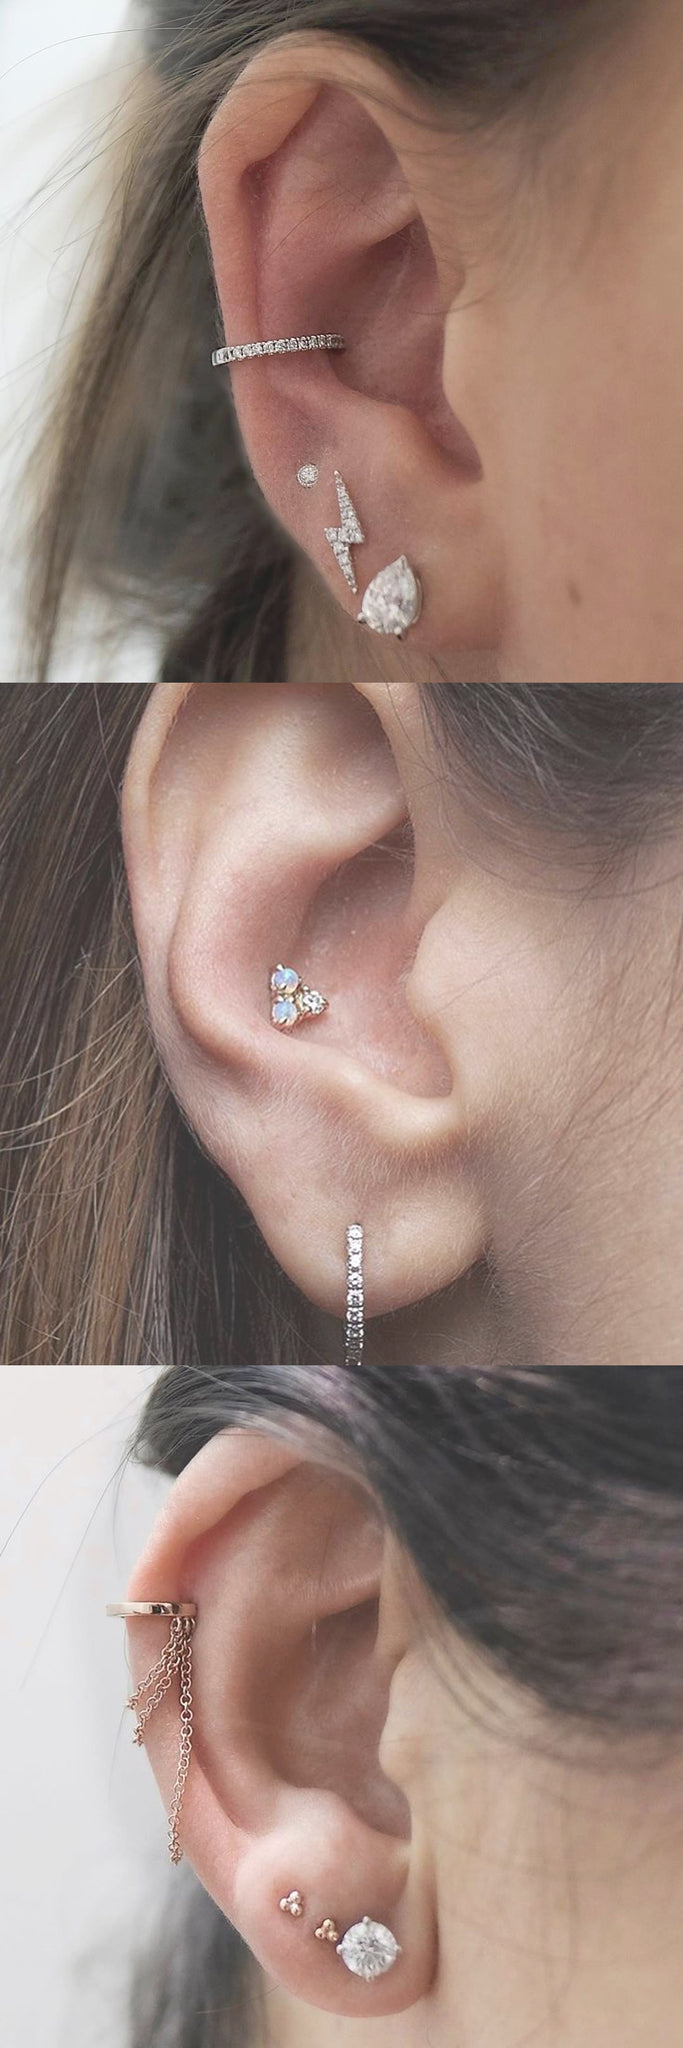 Simple Minimalistic Multiple Ear Piercing Jewelry at MyBodiArt.com - Fake Crystal Conch Ring - Flower Conch Stud - Rose Gold Cartilage Chain Earring